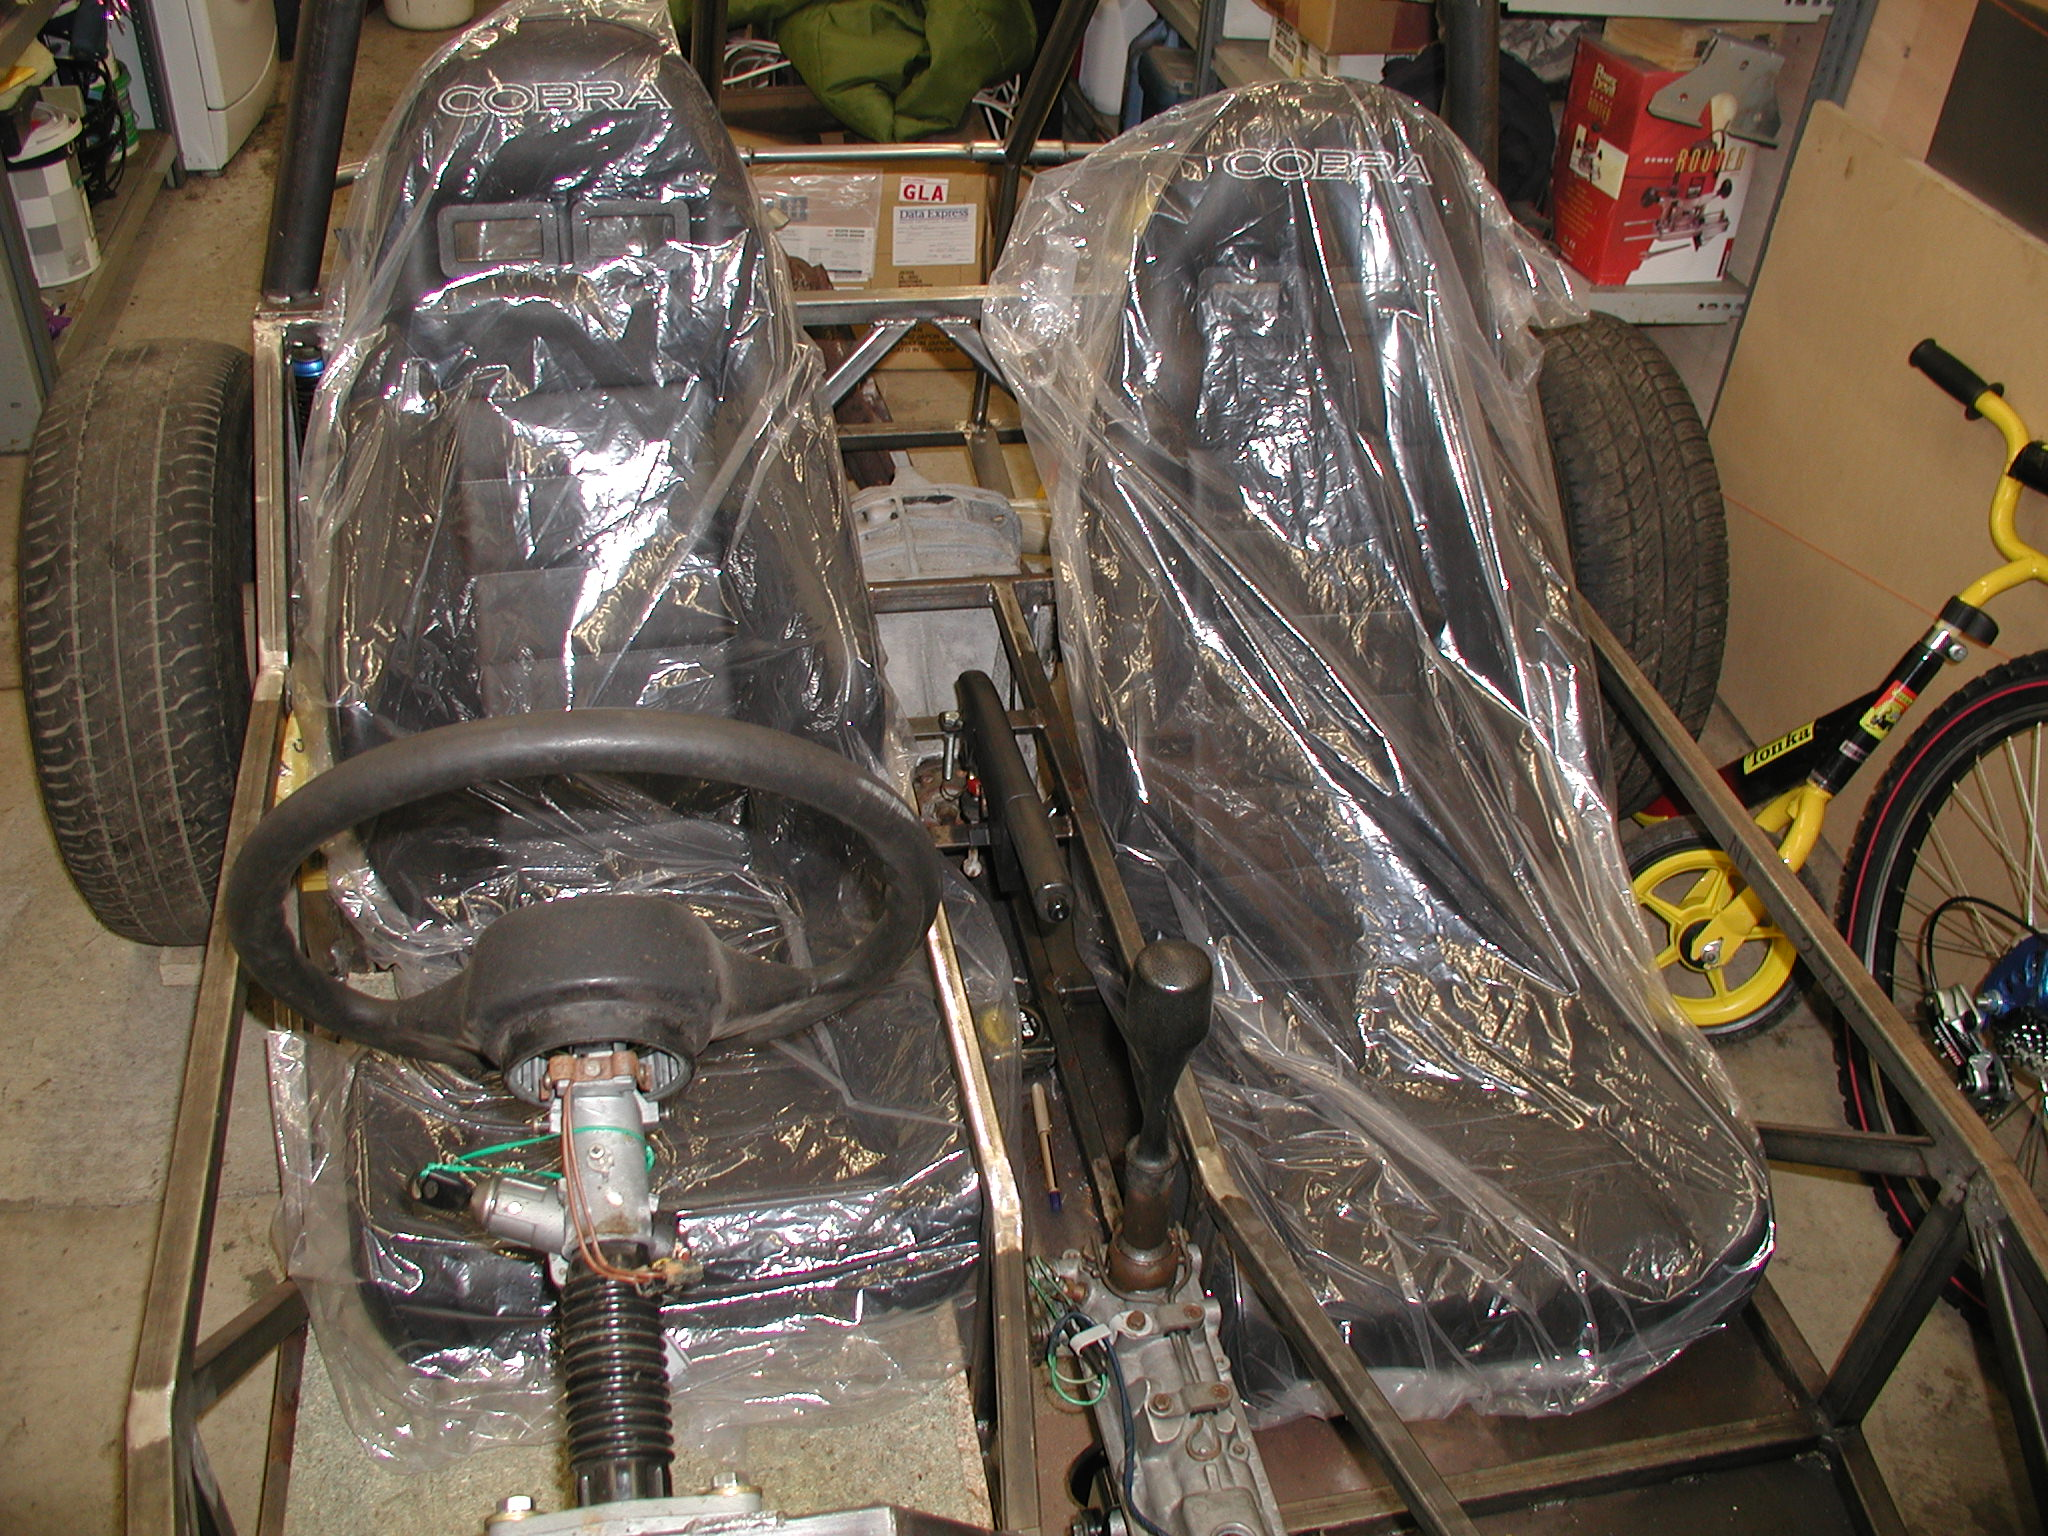 My Cobra Roadster 7 seats all wrapped up in polythene. I also cover them in an old sleeping back for protection until I have finished fitting everything around them, then they will be going up into the attic for safe keeping... I got these from Motorspeed in Ayr who were the cheapest in this area.